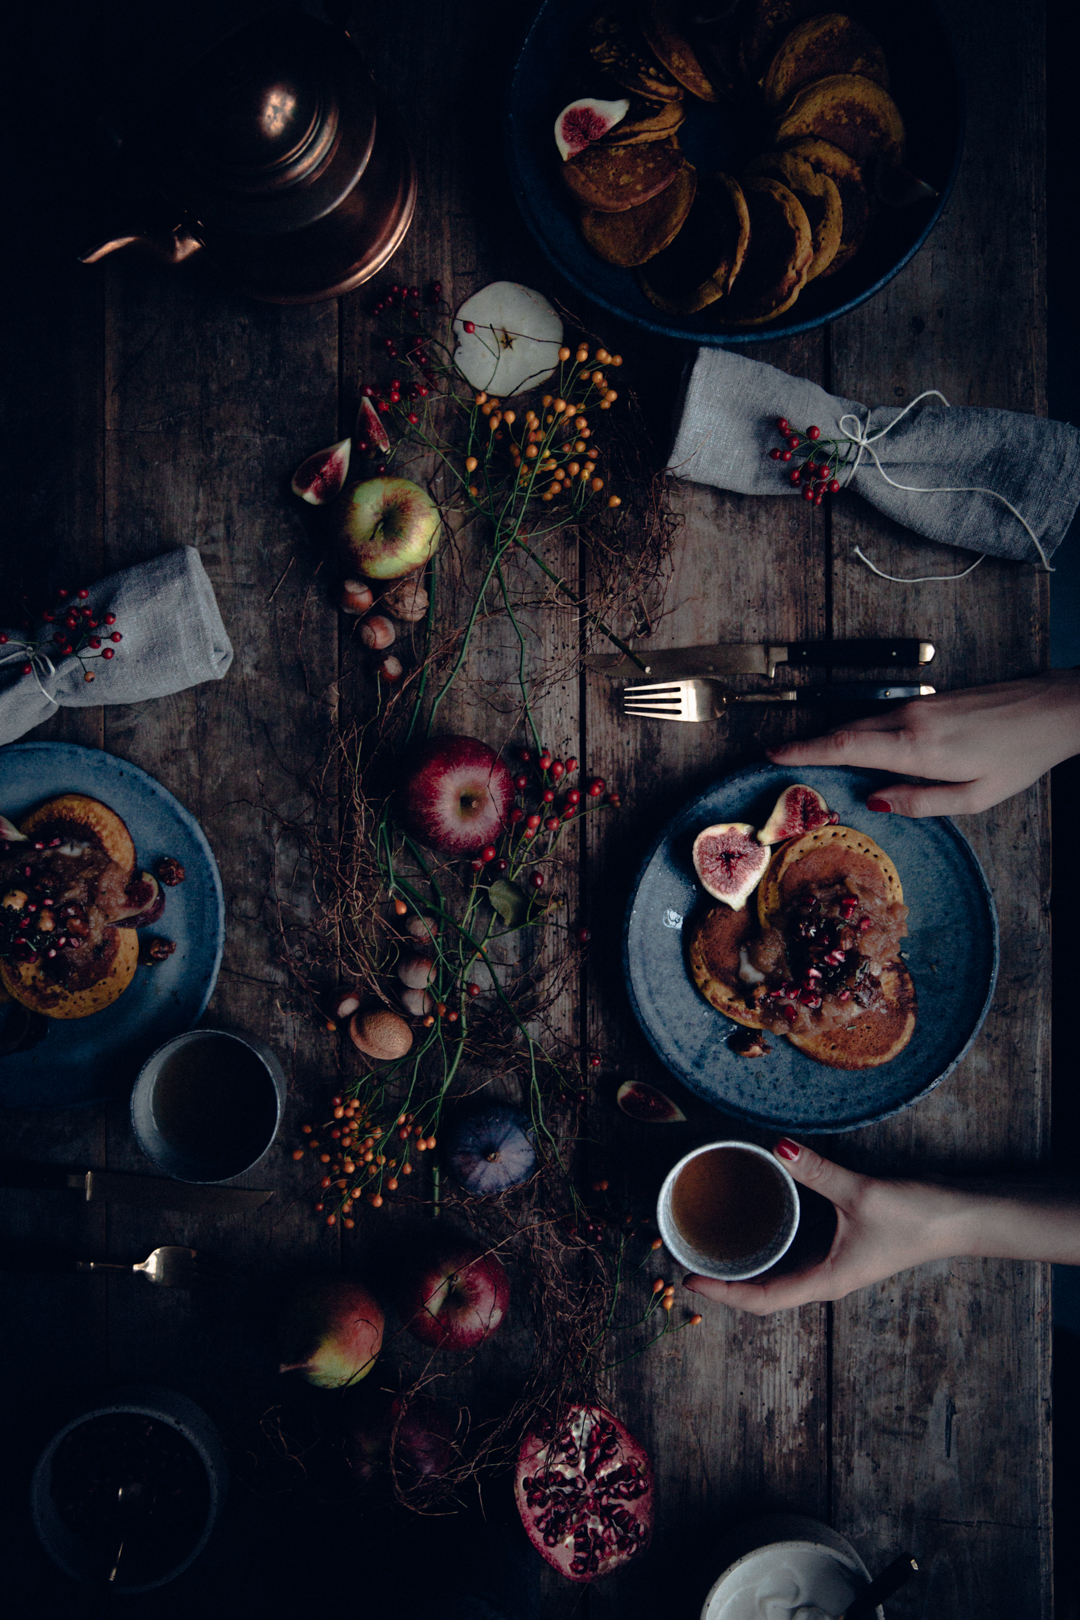 pumpkin-pancakes-with-food-stories-photography-by-christiann-koepke-of-christiannkoepke-com-28